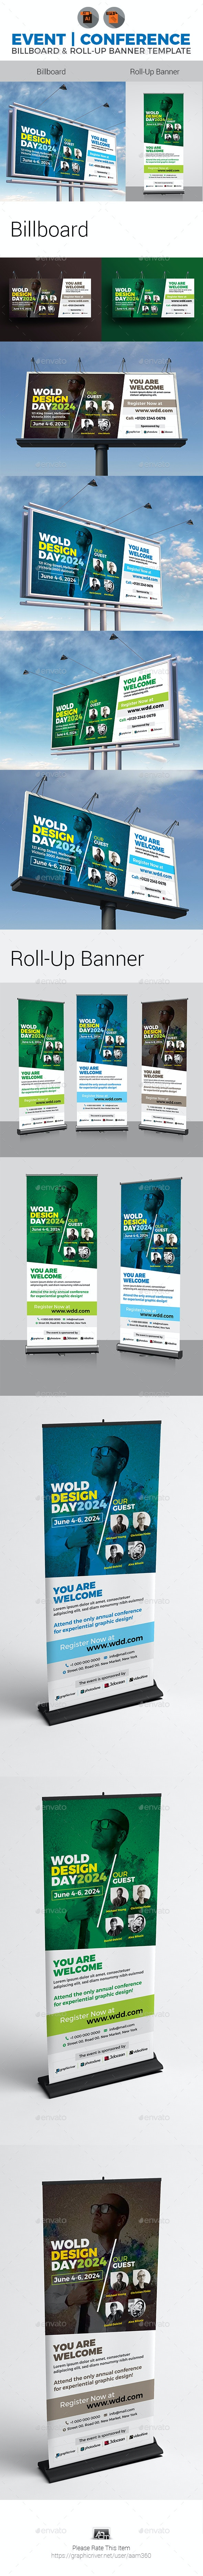 Conference Signage Bundle - Signage Print Templates